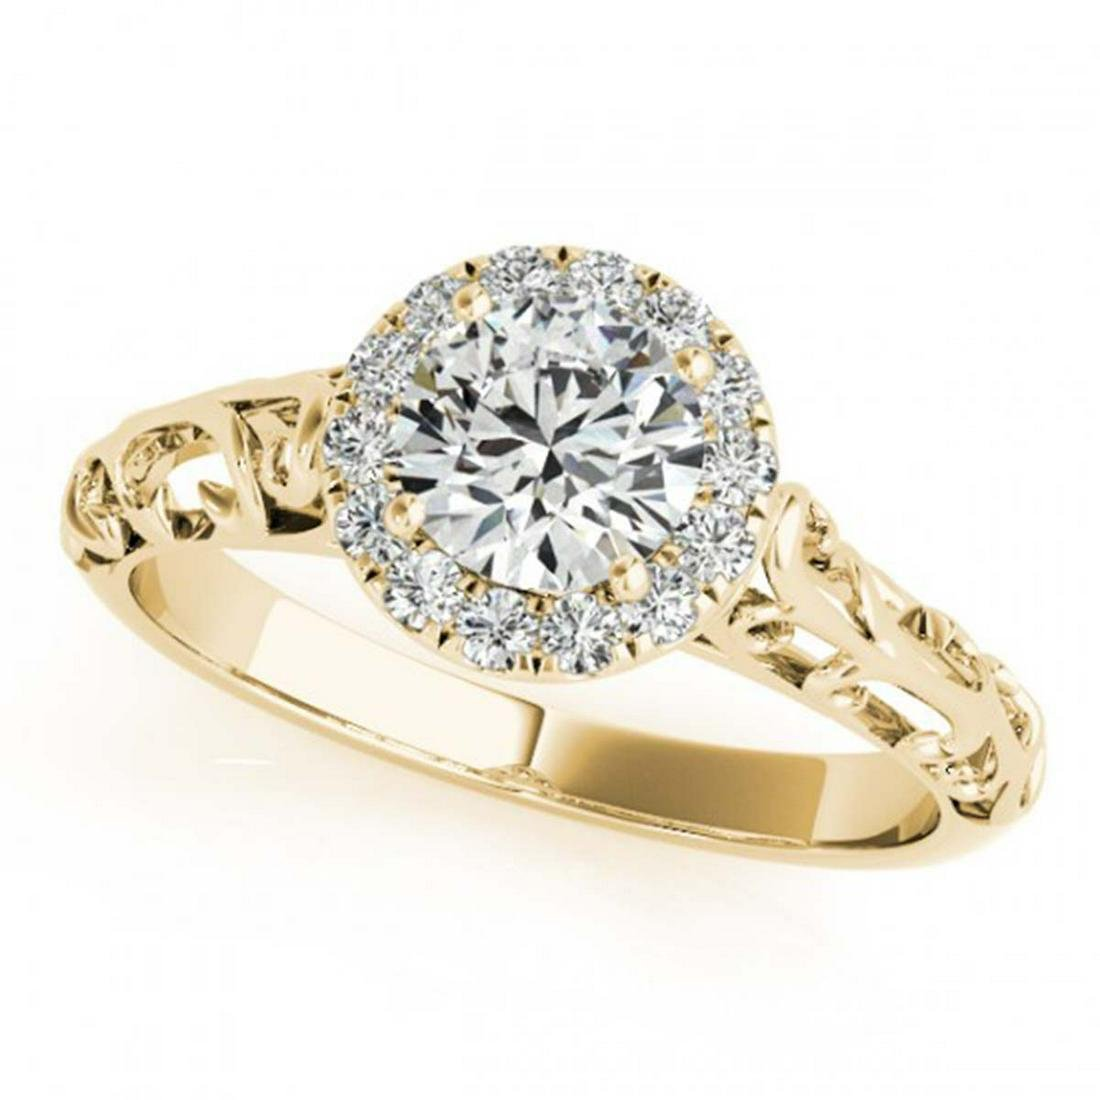 0.62 ctw VS/SI Diamond Solitaire Ring 14K Yellow Gold -